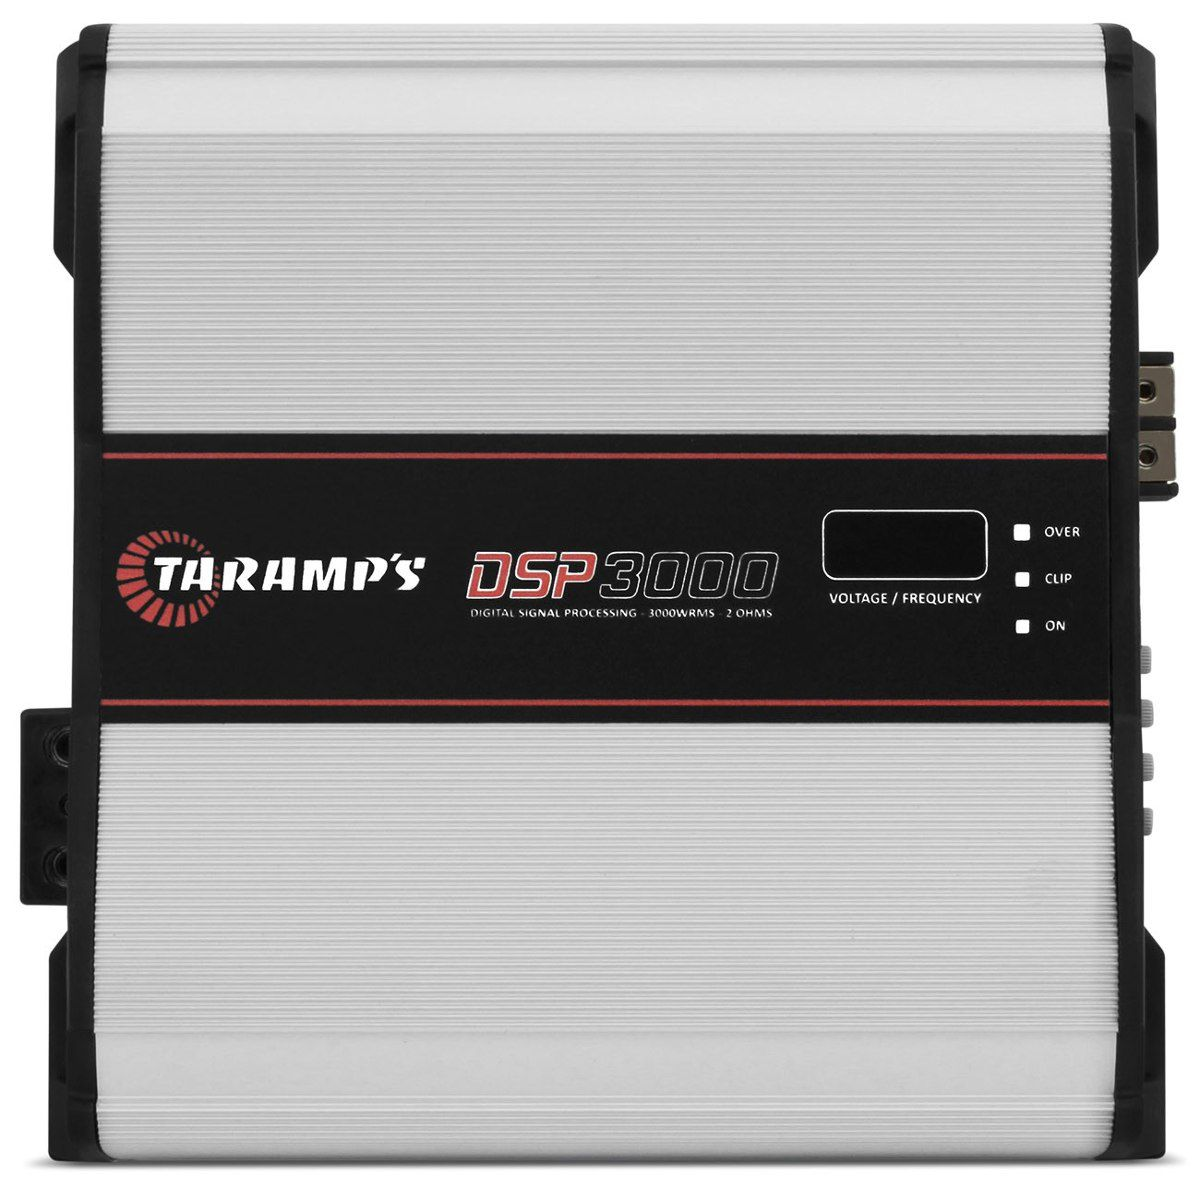 Modulo Amplificador Taramps 3000 Rms DSP-3000 Mono DIgital 1 Canal 1 Ohm 2 Ohms Classe D Bass Boost Crossover